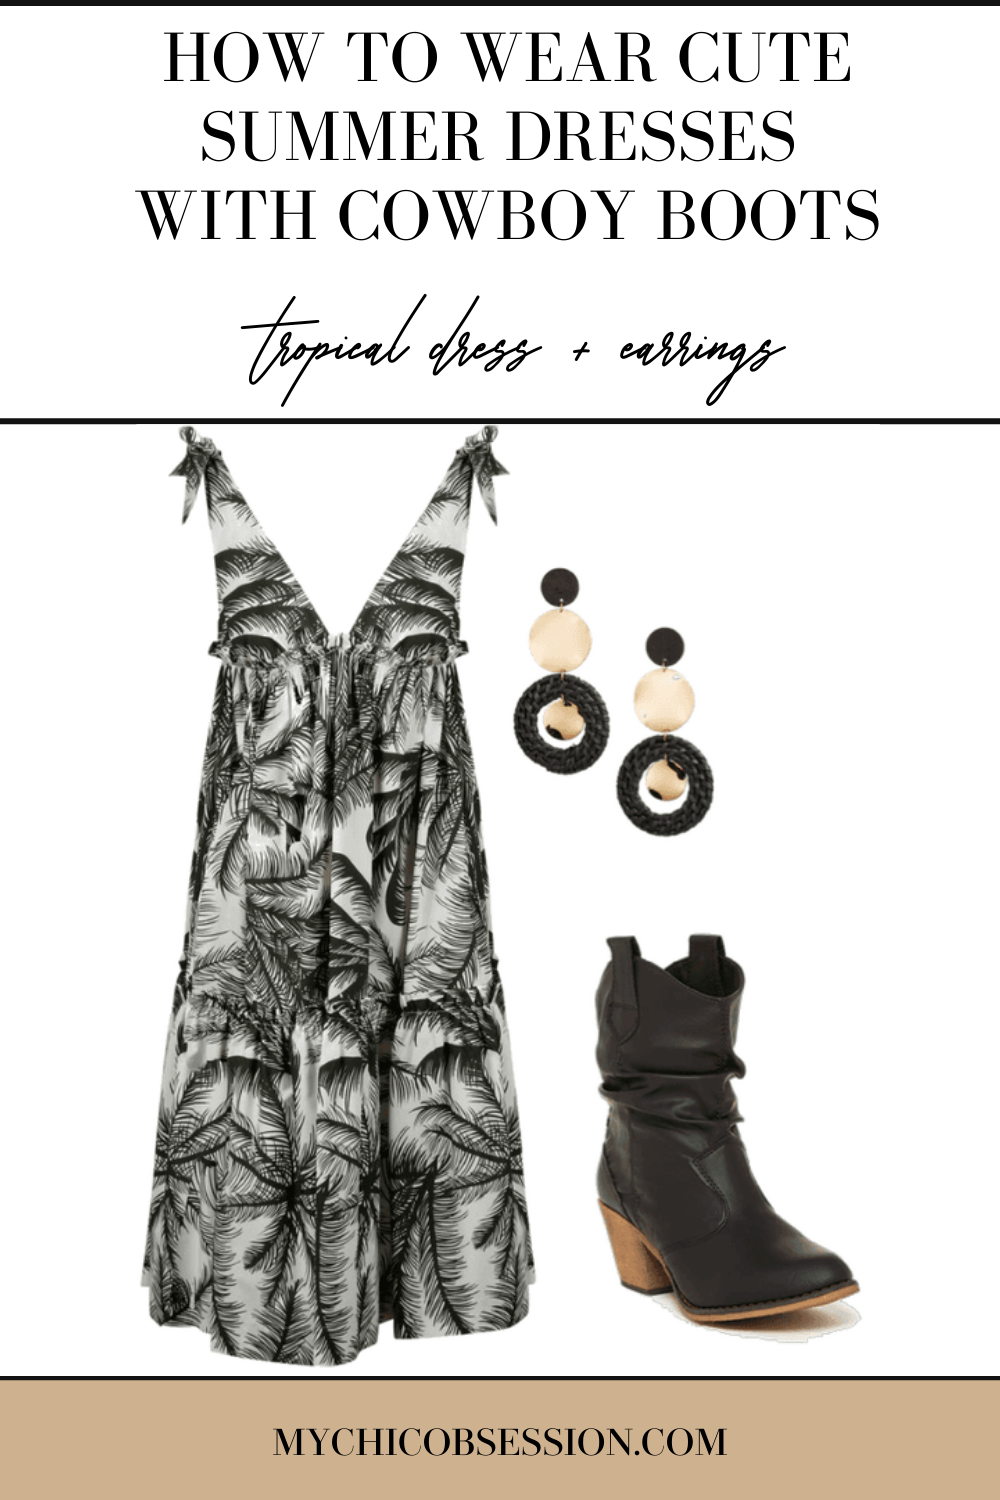 White and black palm print  v-neck dress, round stacked statement earrings.